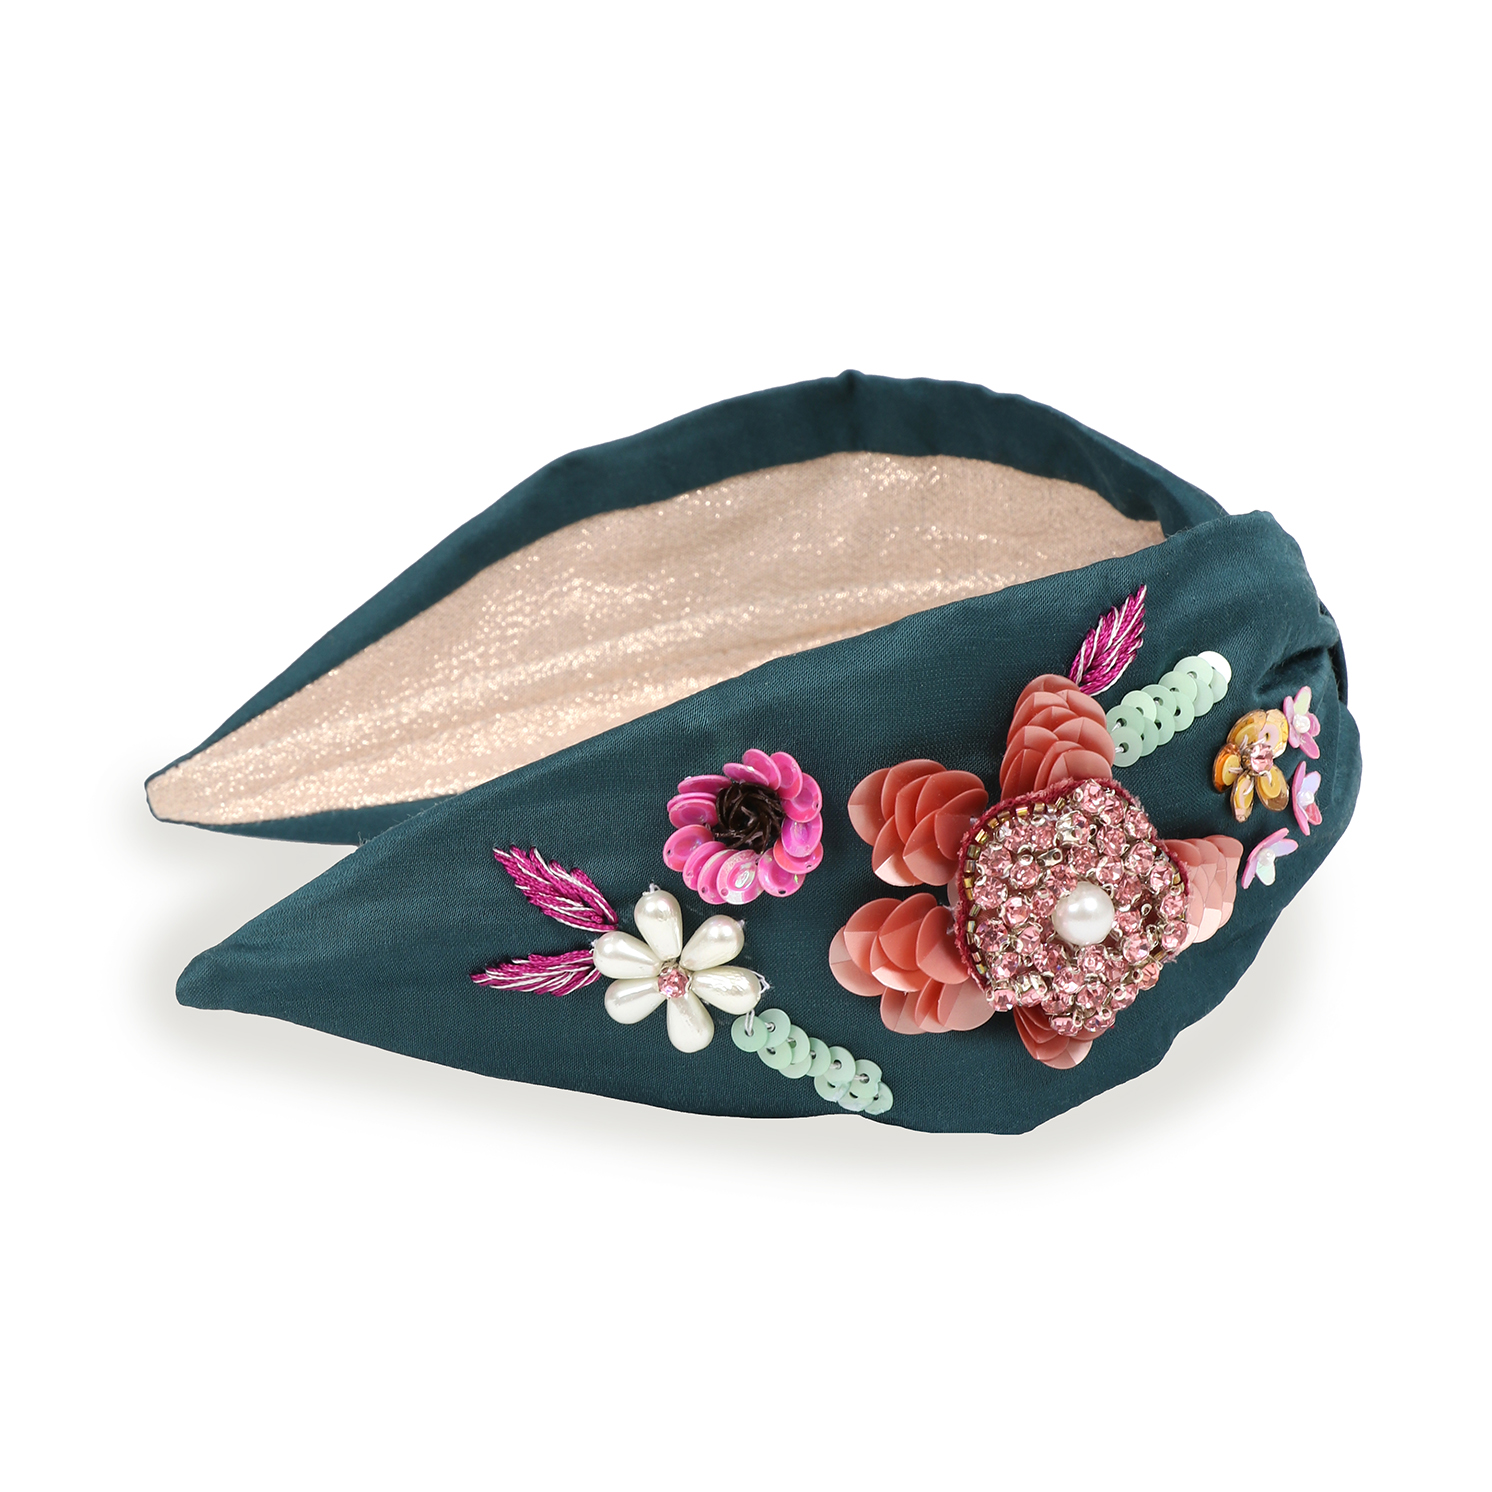 Powder – Teal Embroidered Floral Headband with Powder Presentation Gift Bag